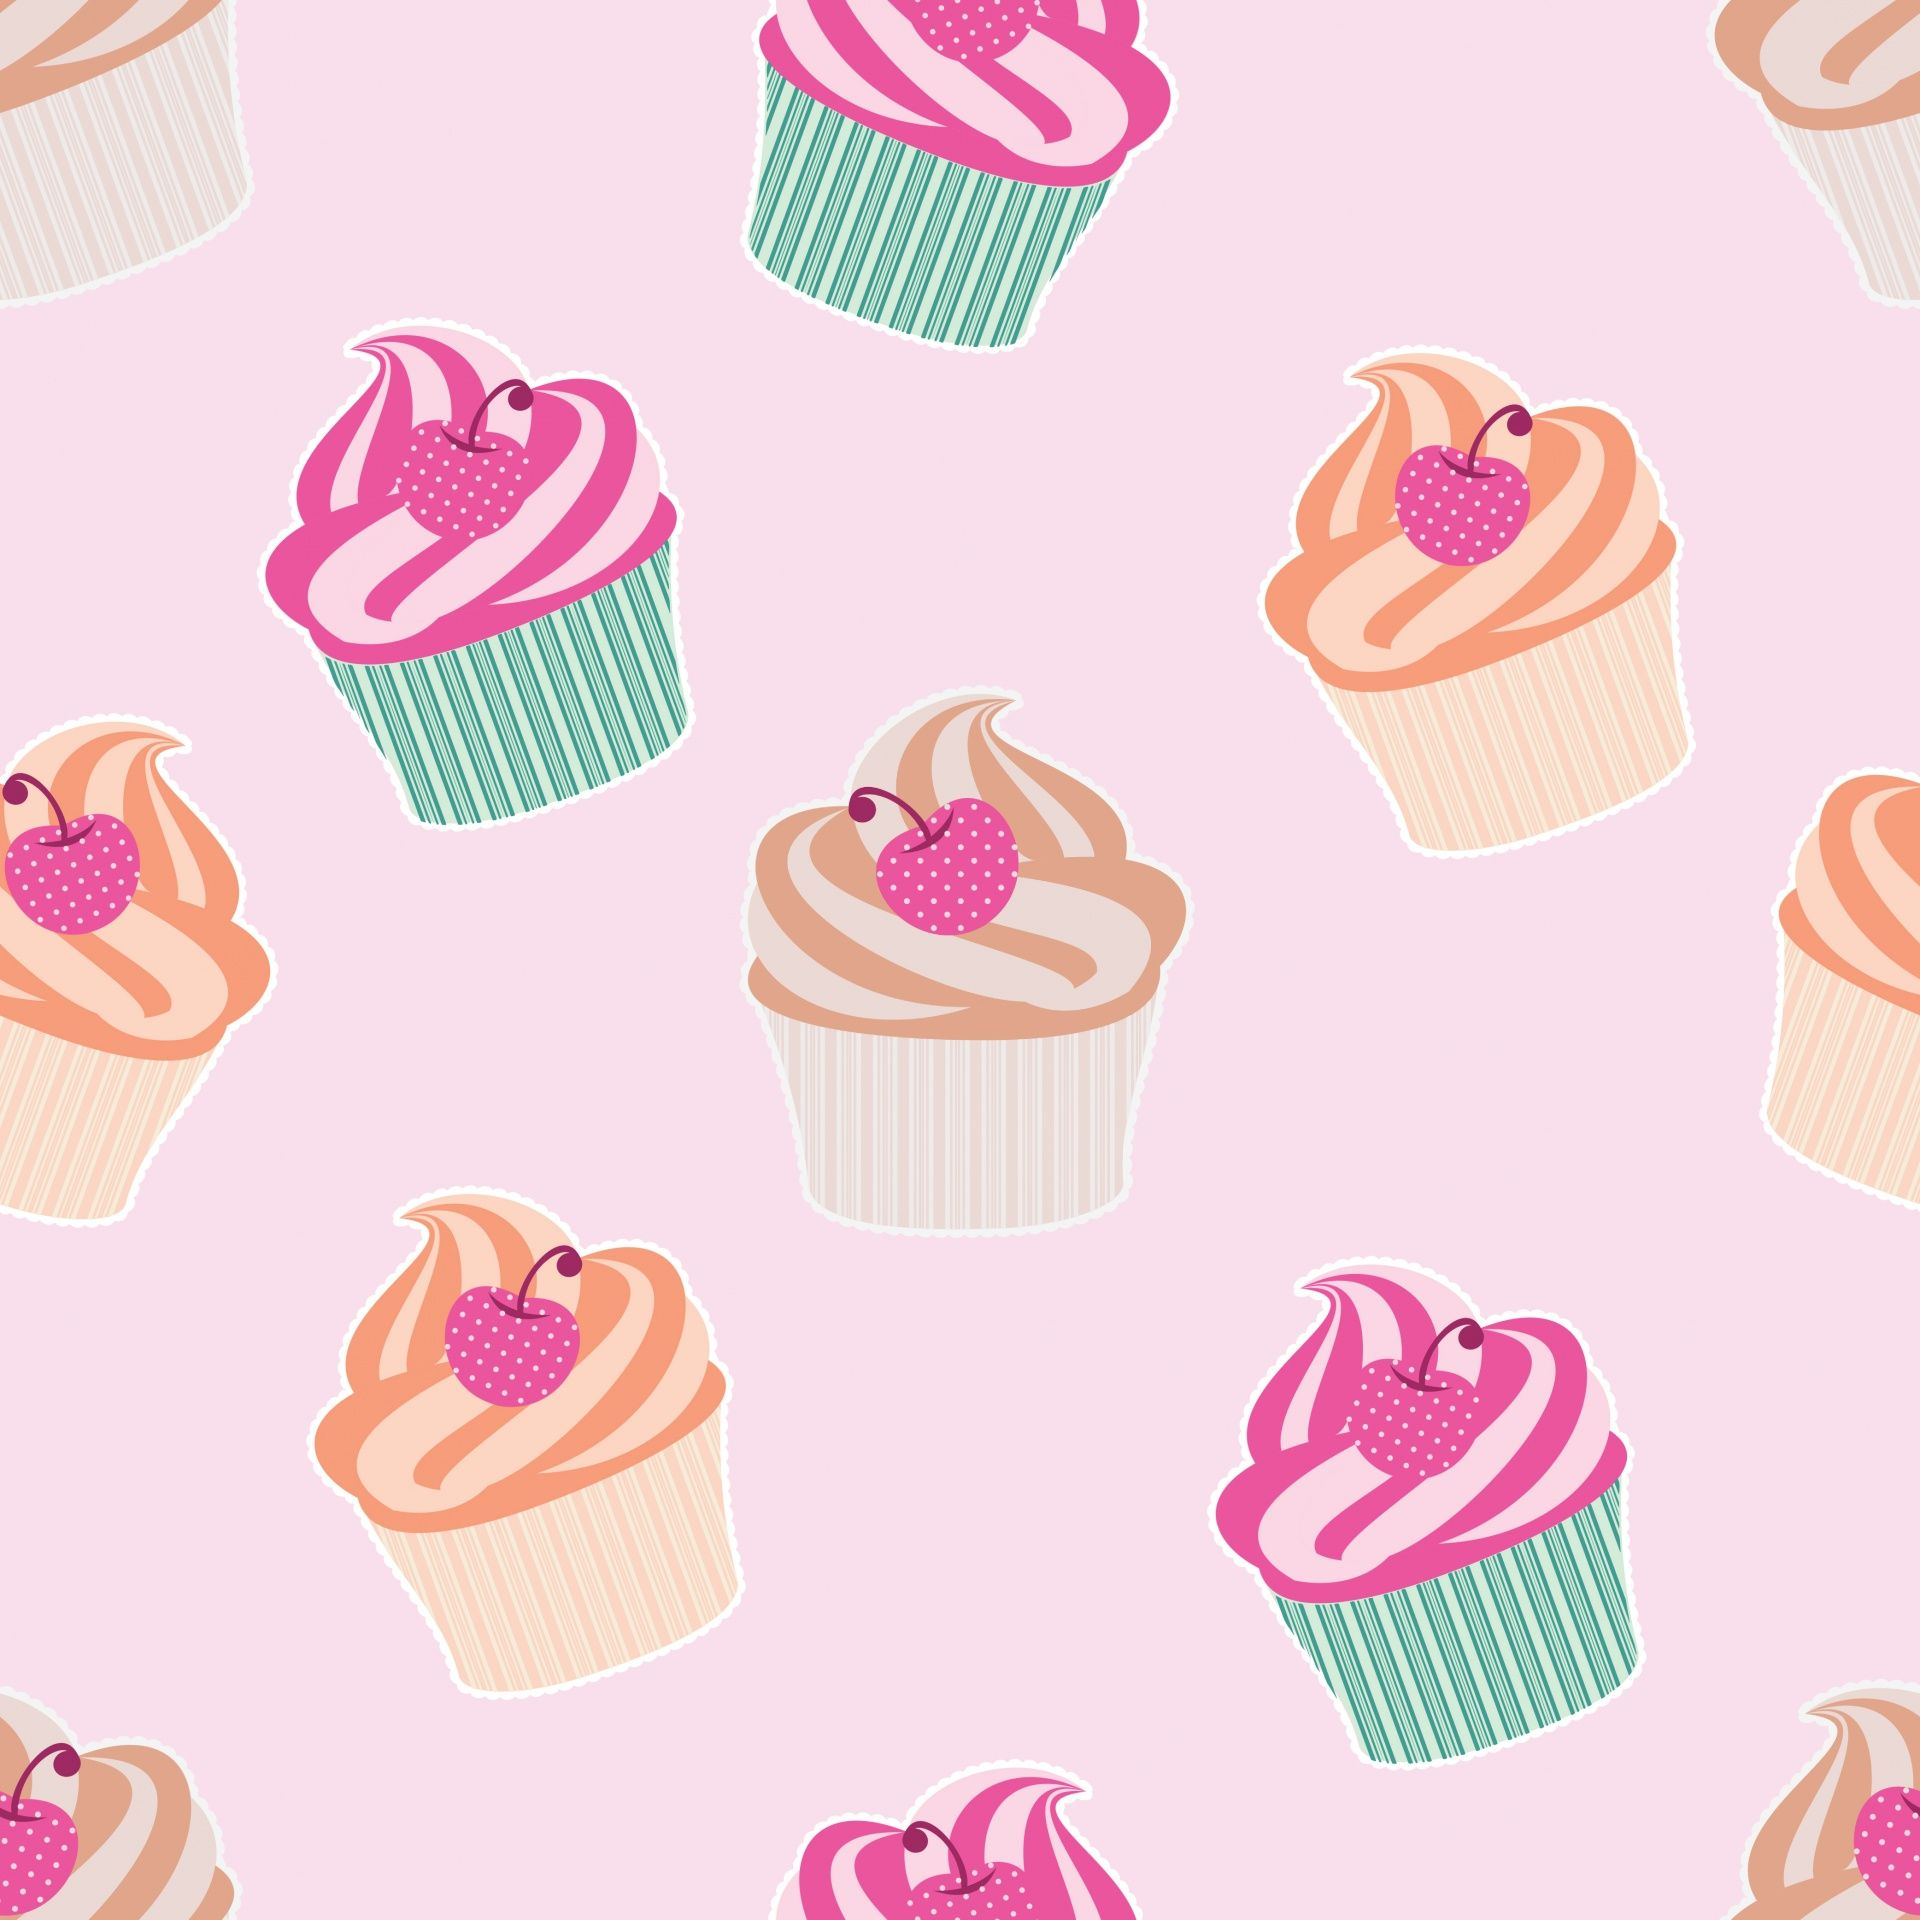 65 Best Free Cute Muffin Wallpapers